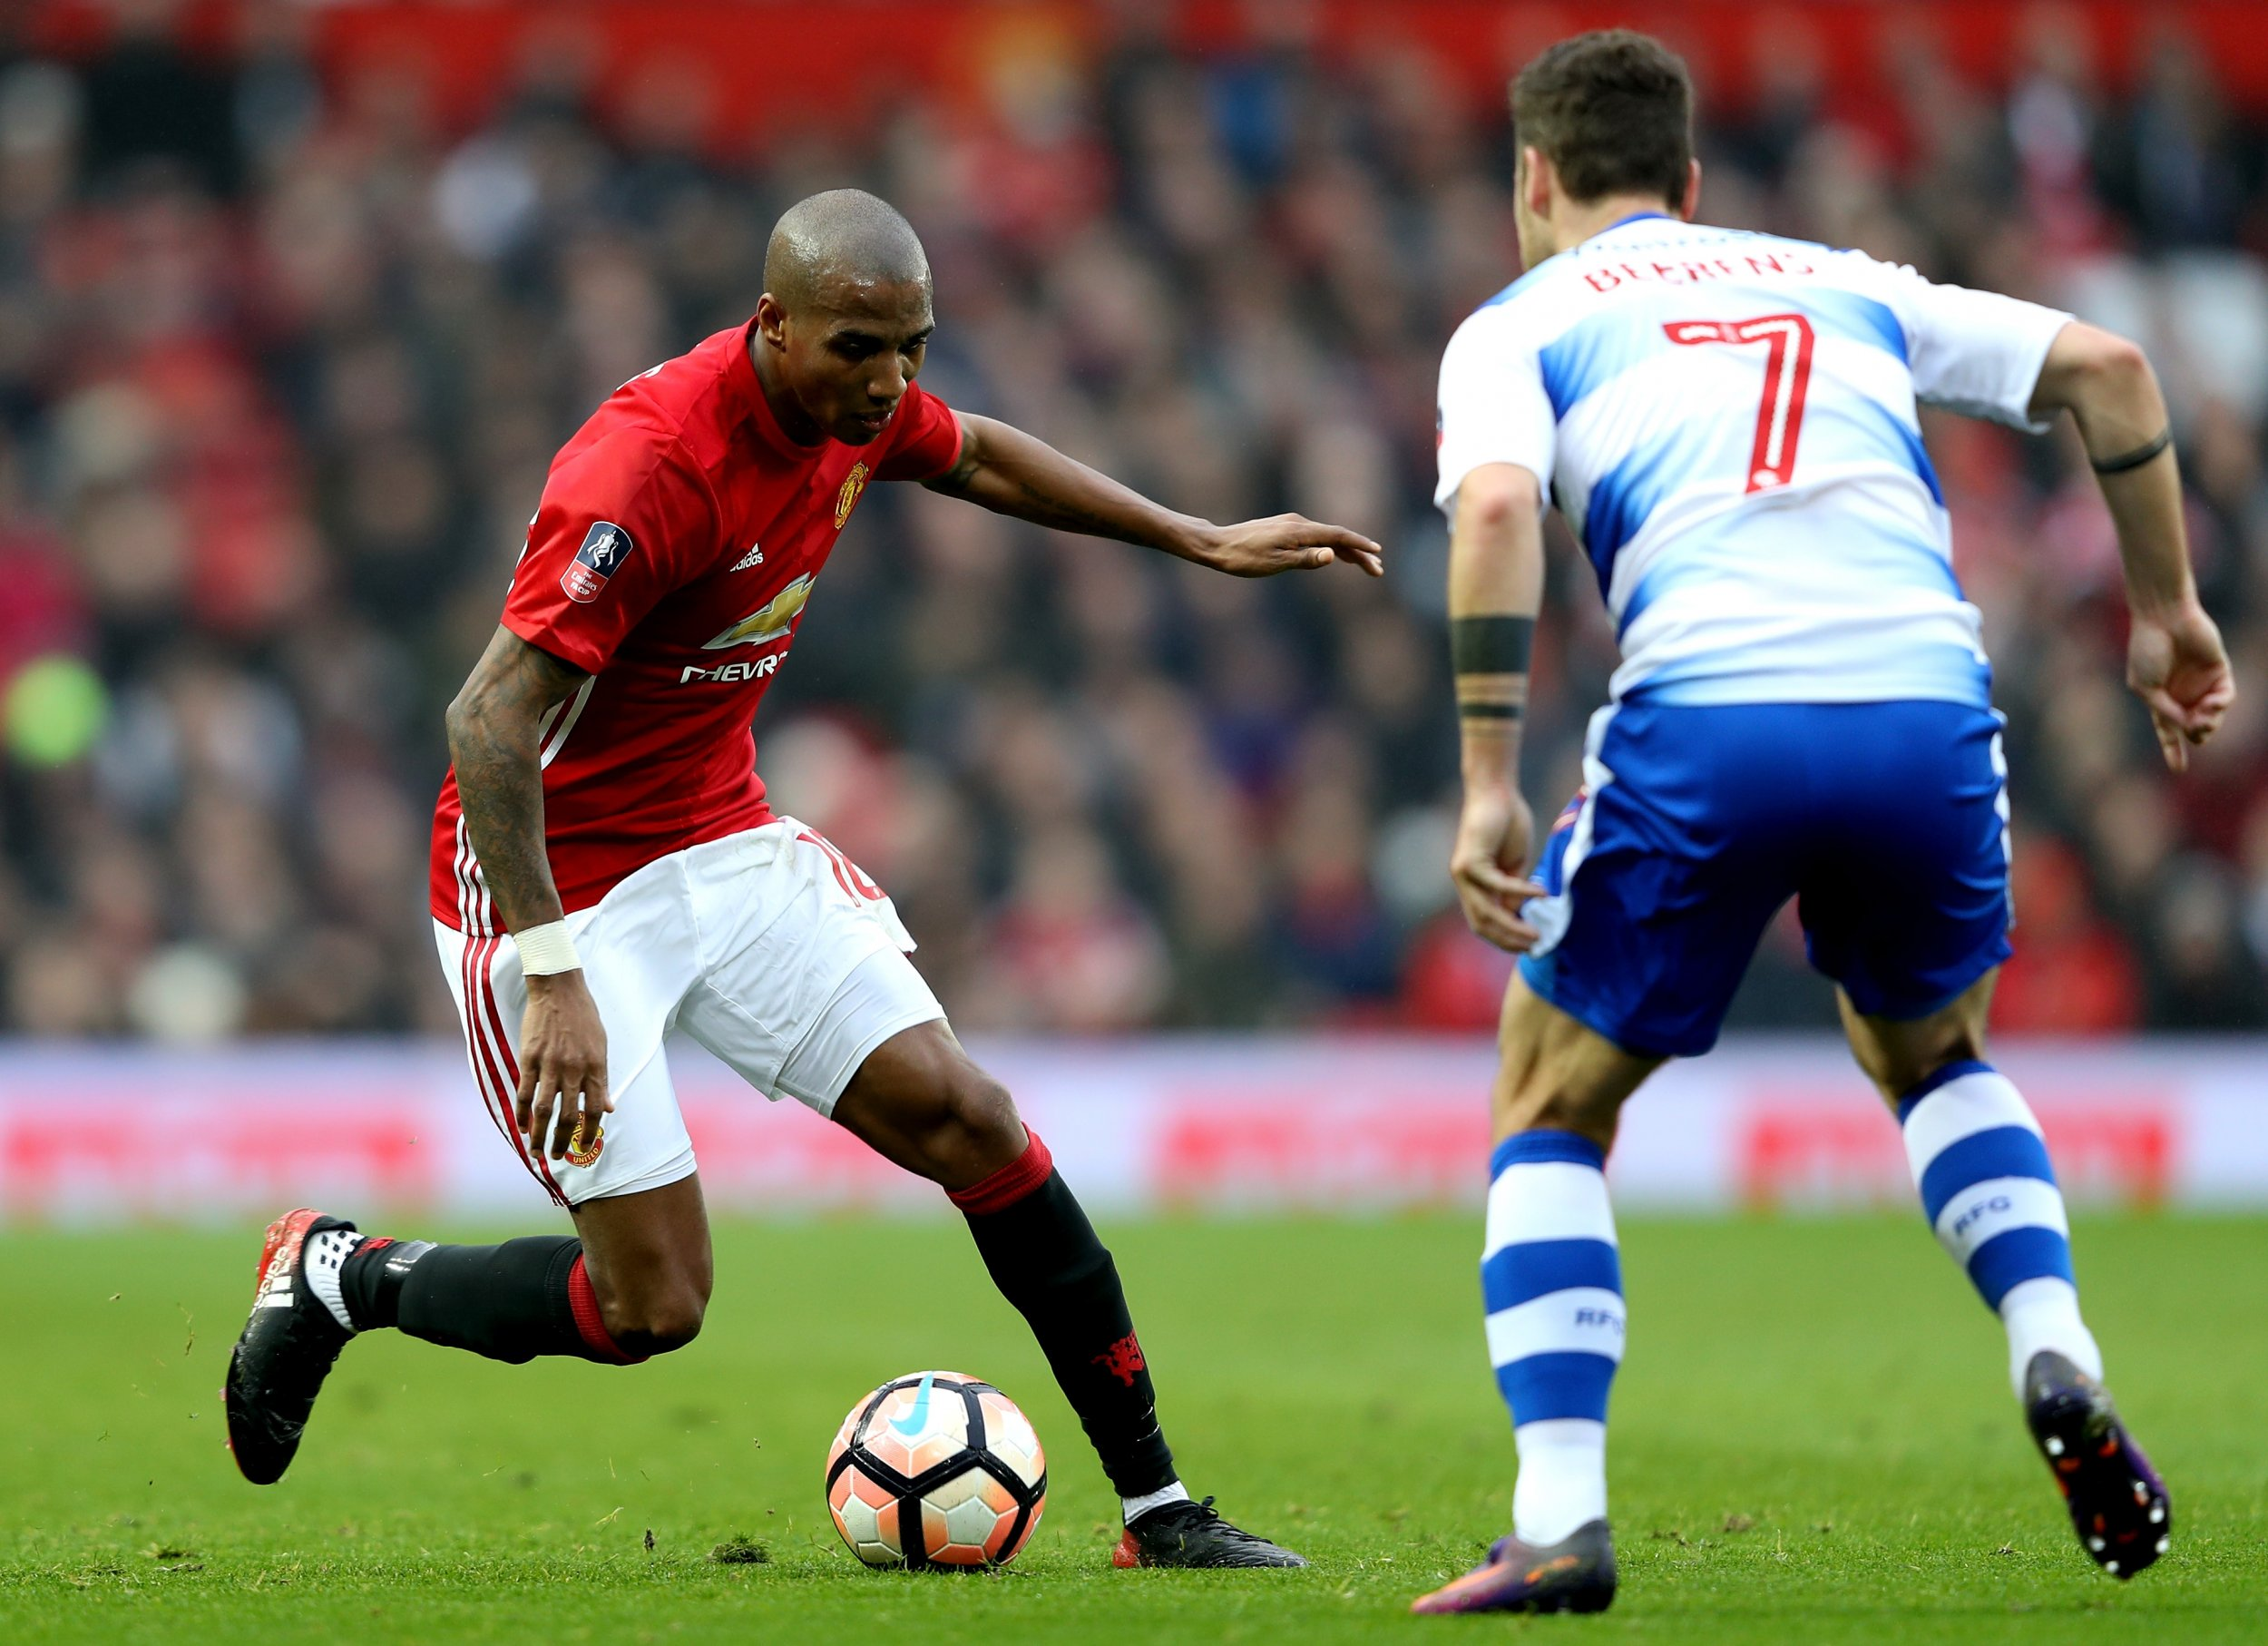 Manchester United winger Ashley Young